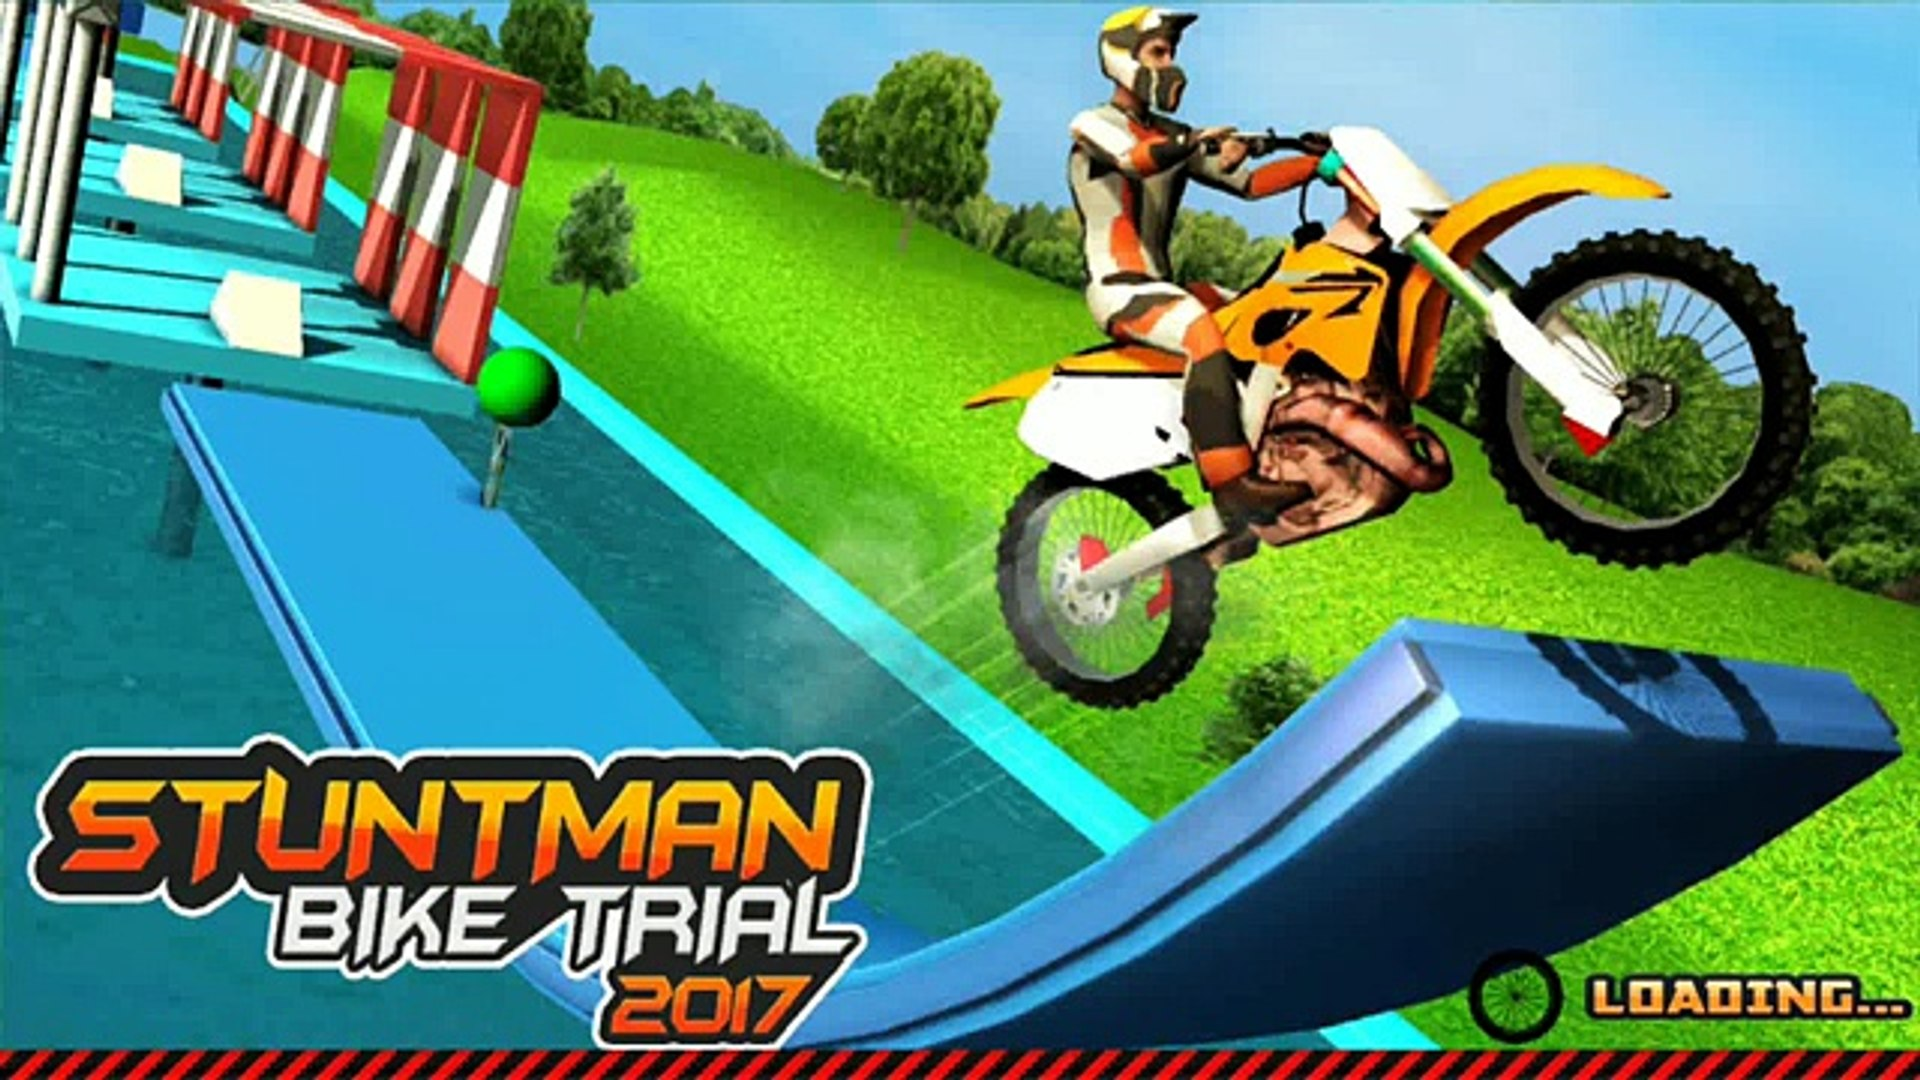 Stuntman Bike Trial 2017 - adventure game by Top TAP Games - Android Gameplay HD | DroidCheat | Andr